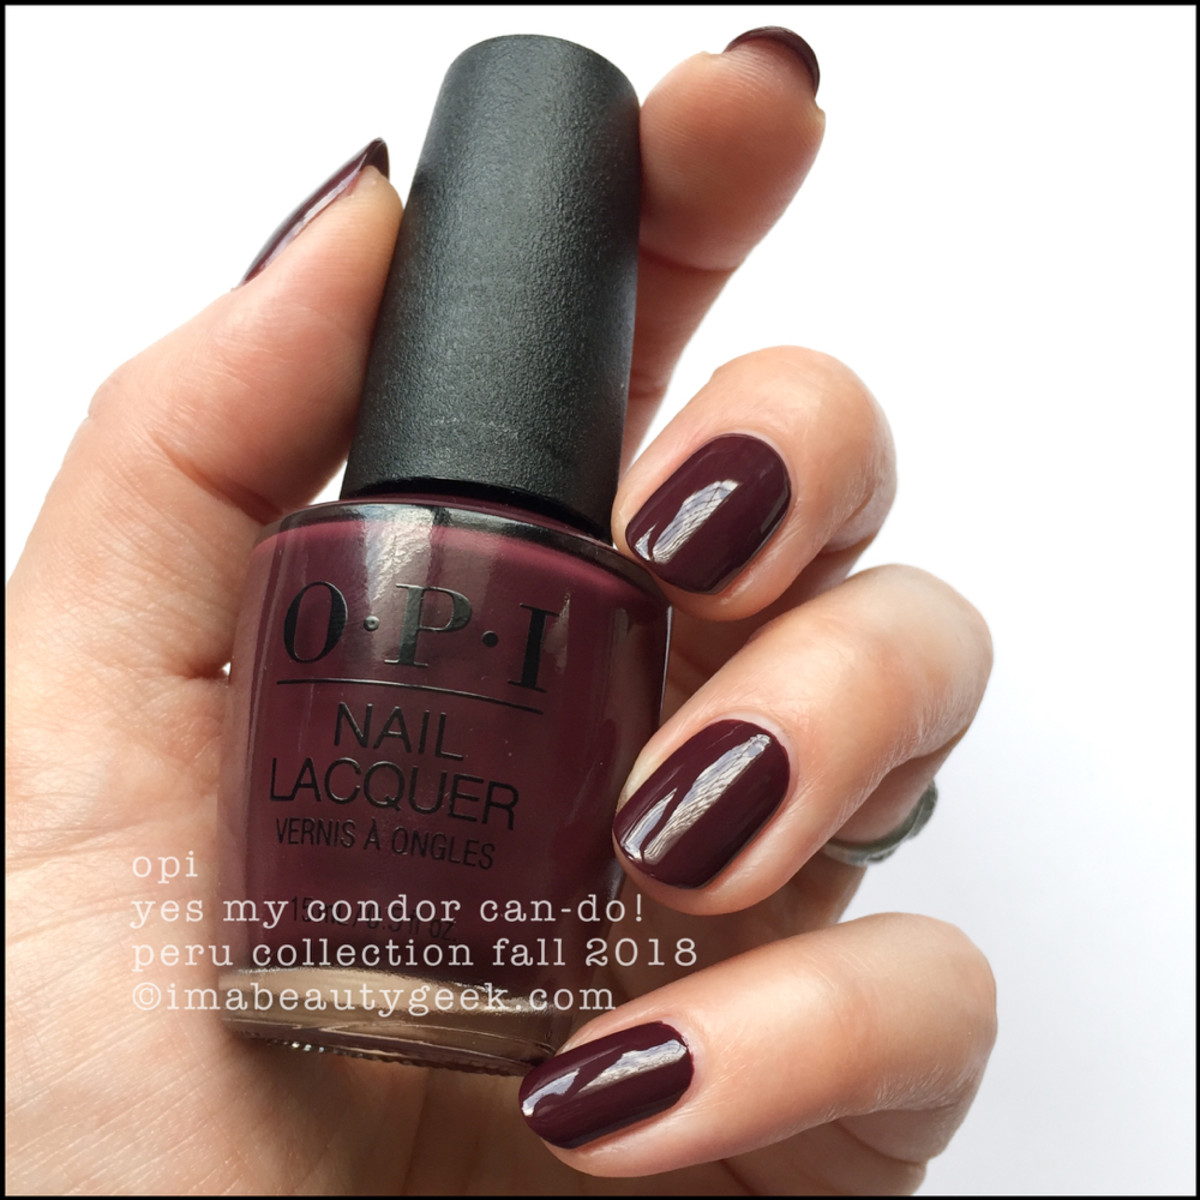 OPI Yes My Condor Can-do! _ OPI Peru Collection Fall 2018